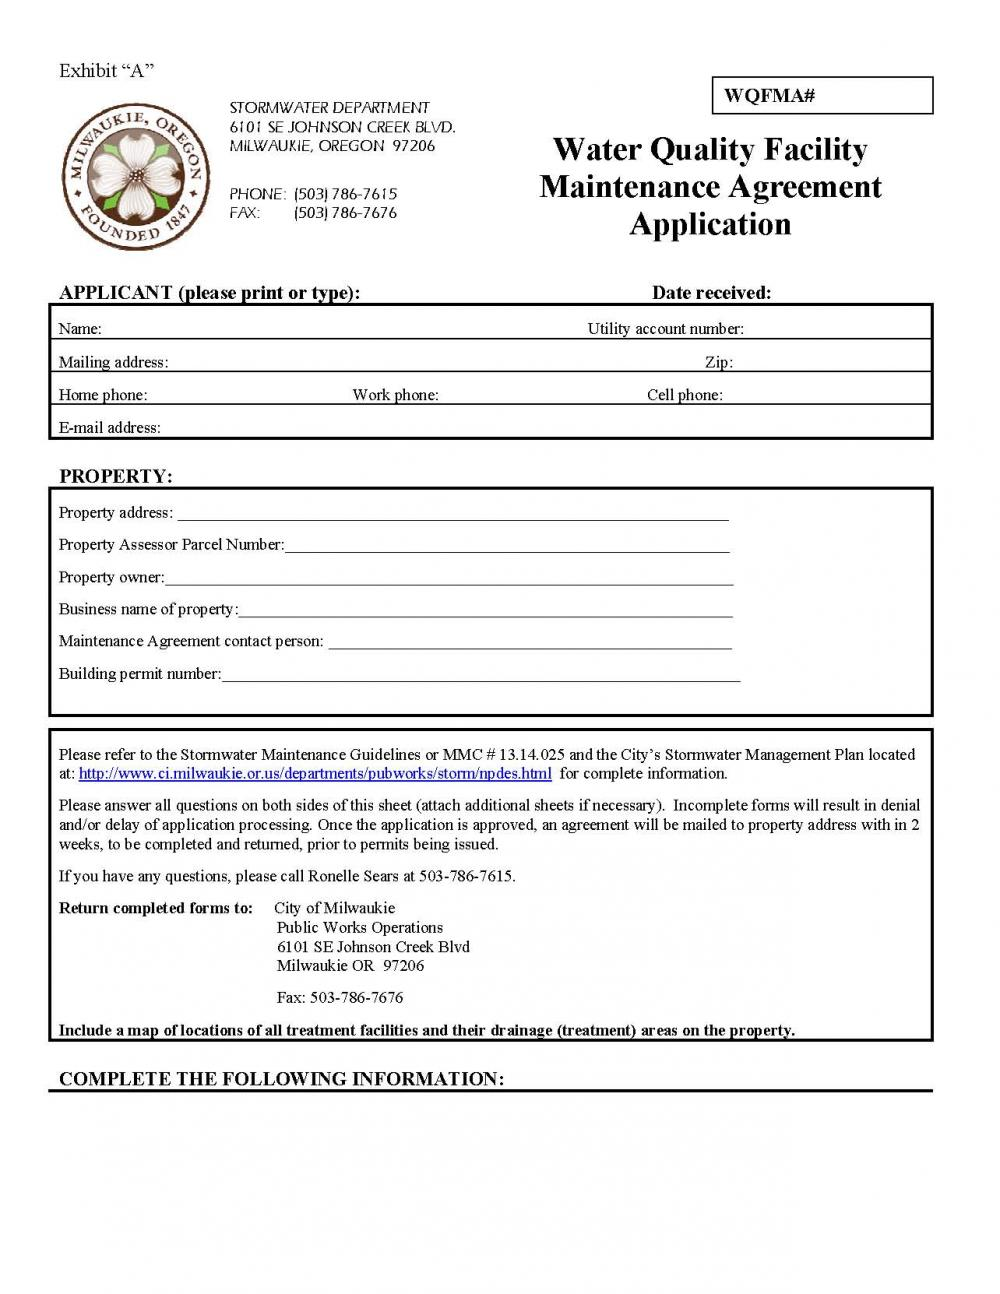 Stormwater Quality Facility Maintenance Agreement